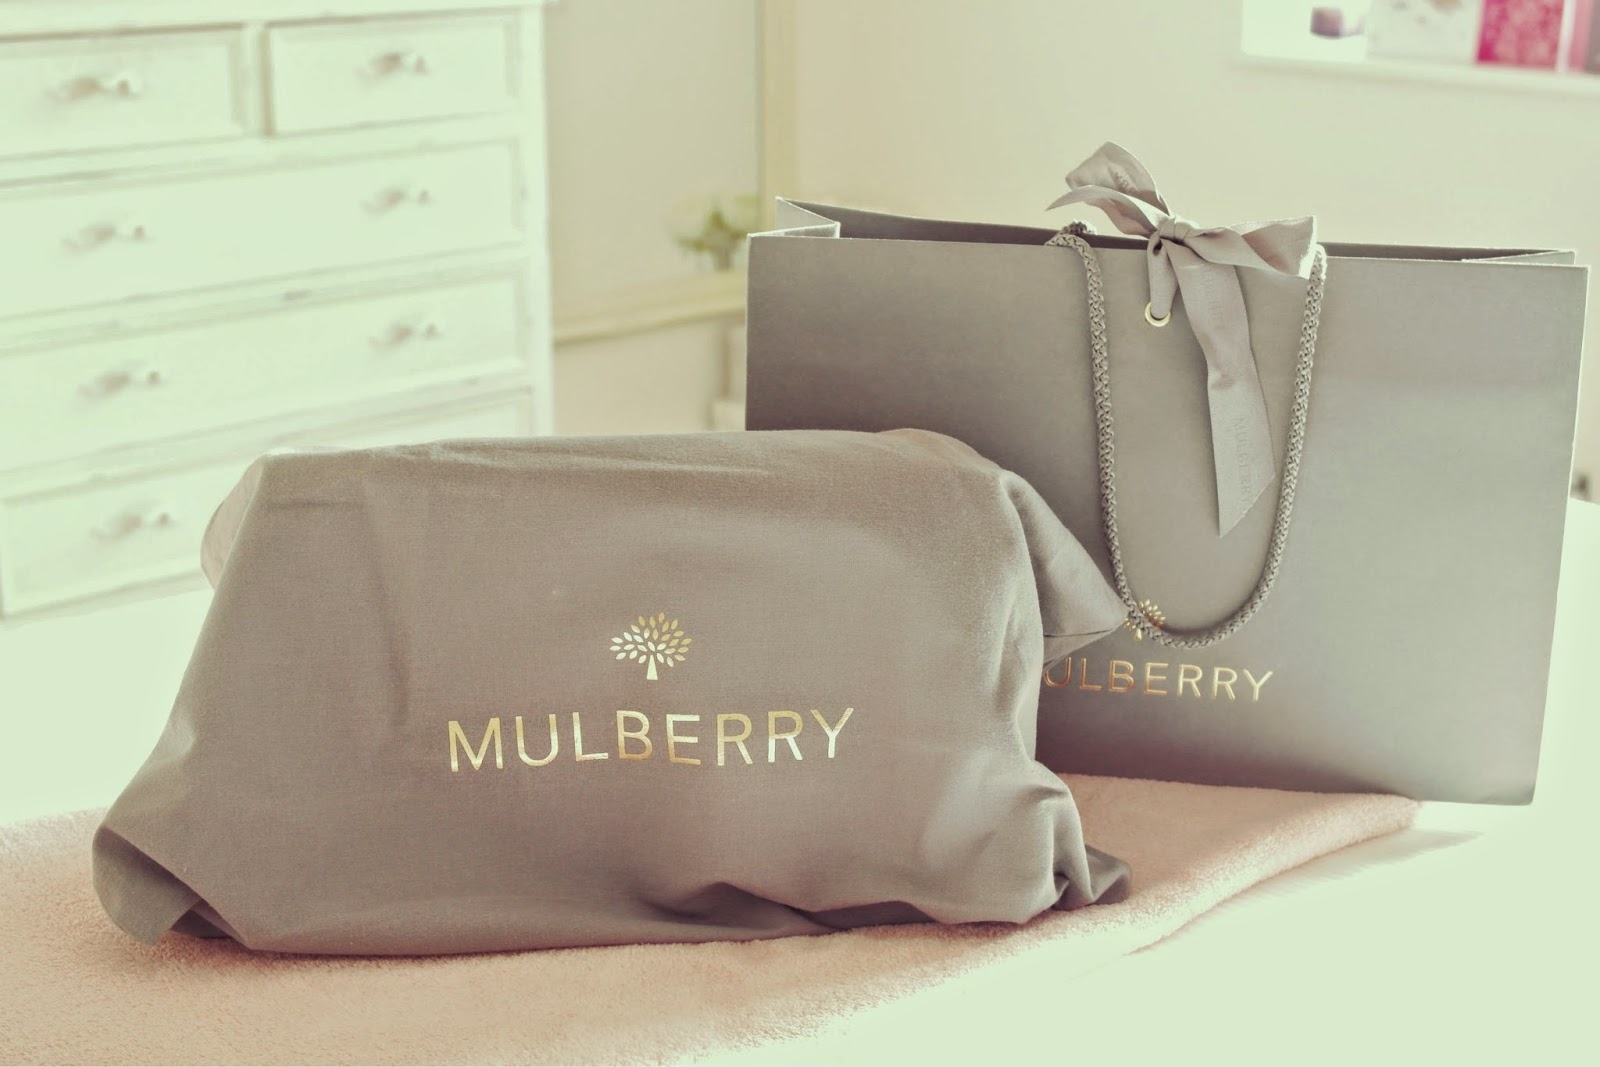 Mulberry handbag from bicester village